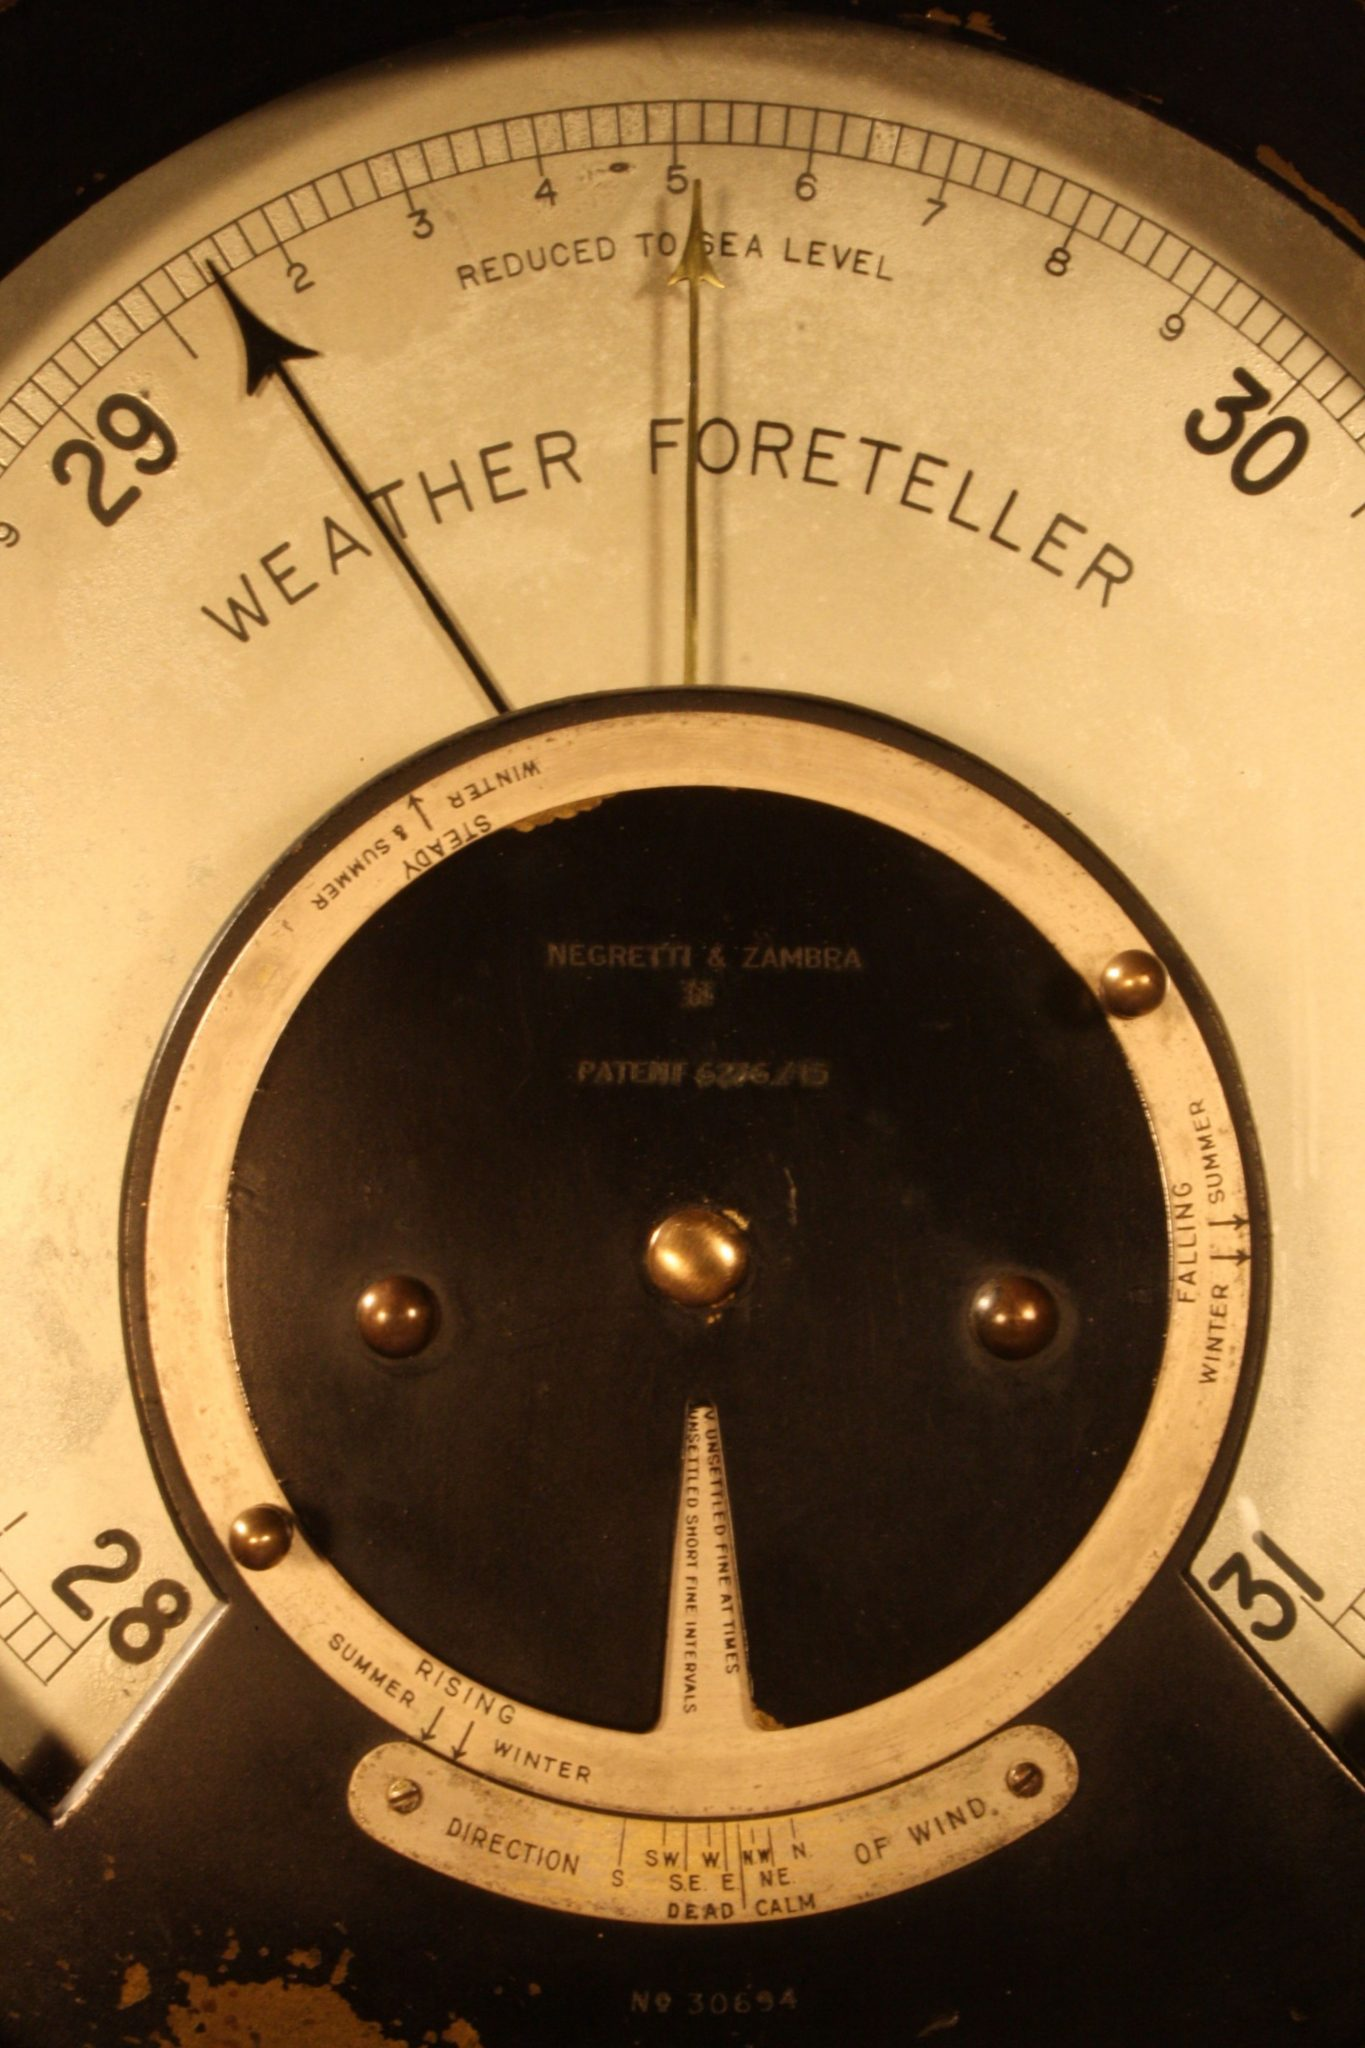 Image of Negretti & Zambra Weather Foreteller